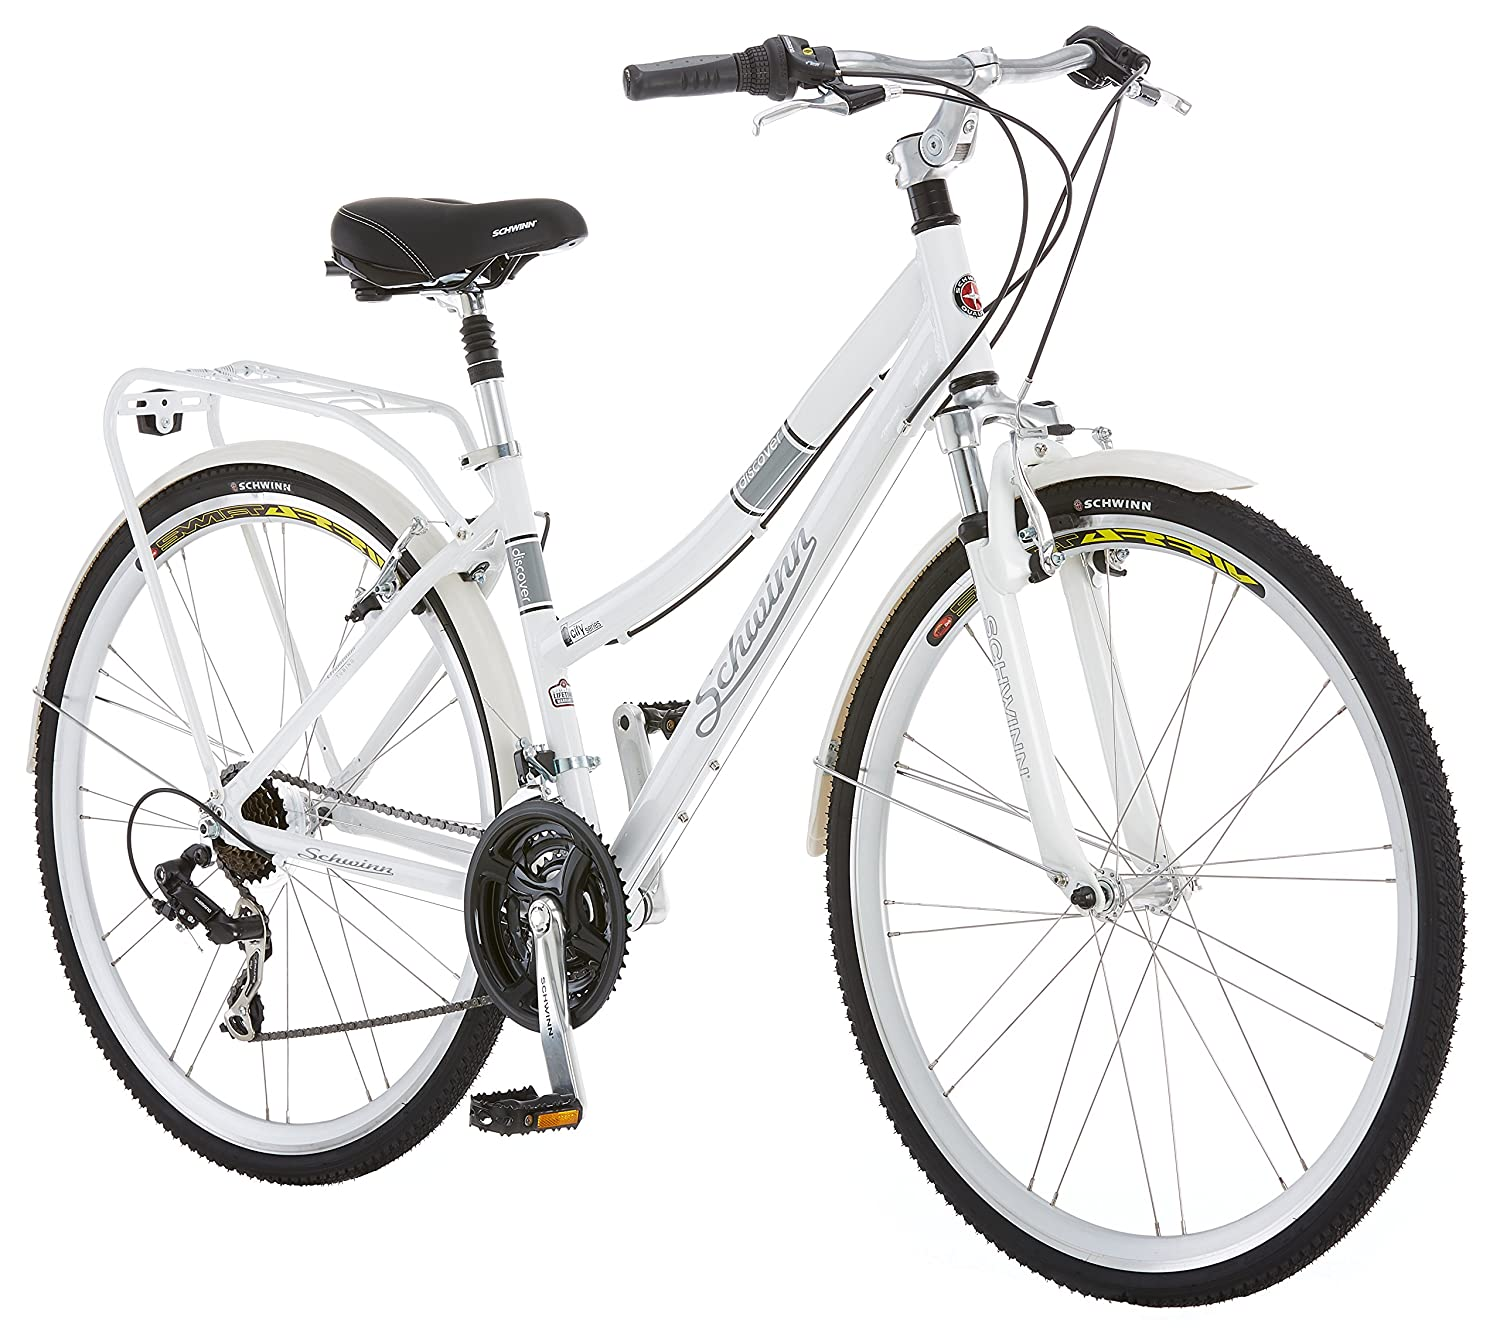 Schwinn Discover Hybrid Bike for Men and Women, Small